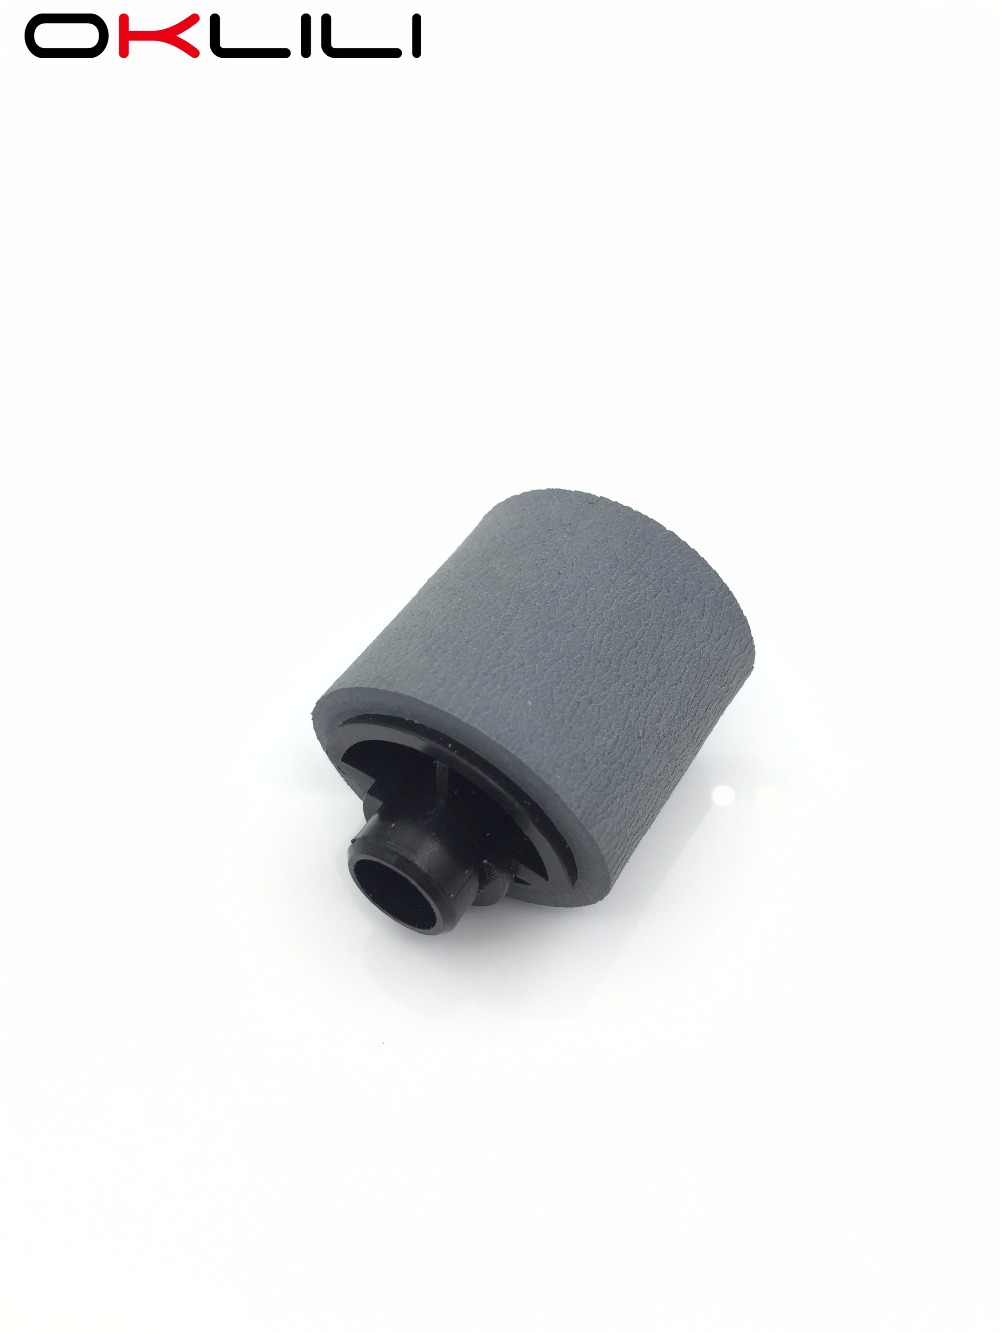 10X JC72-01231A Pickup Roller for Samsung ML1510 1710 1740 1750 2250 SCX4016 4116 4100 4200 4220 4300 4500 4520 4720 SF560 SF565 j720 1231a pickup roller tire for samsung ml 1510 1710 1740 1750 2250 2251n 2252 sf 560 565p 755p scx 4016 4116 4200 4216f 4720